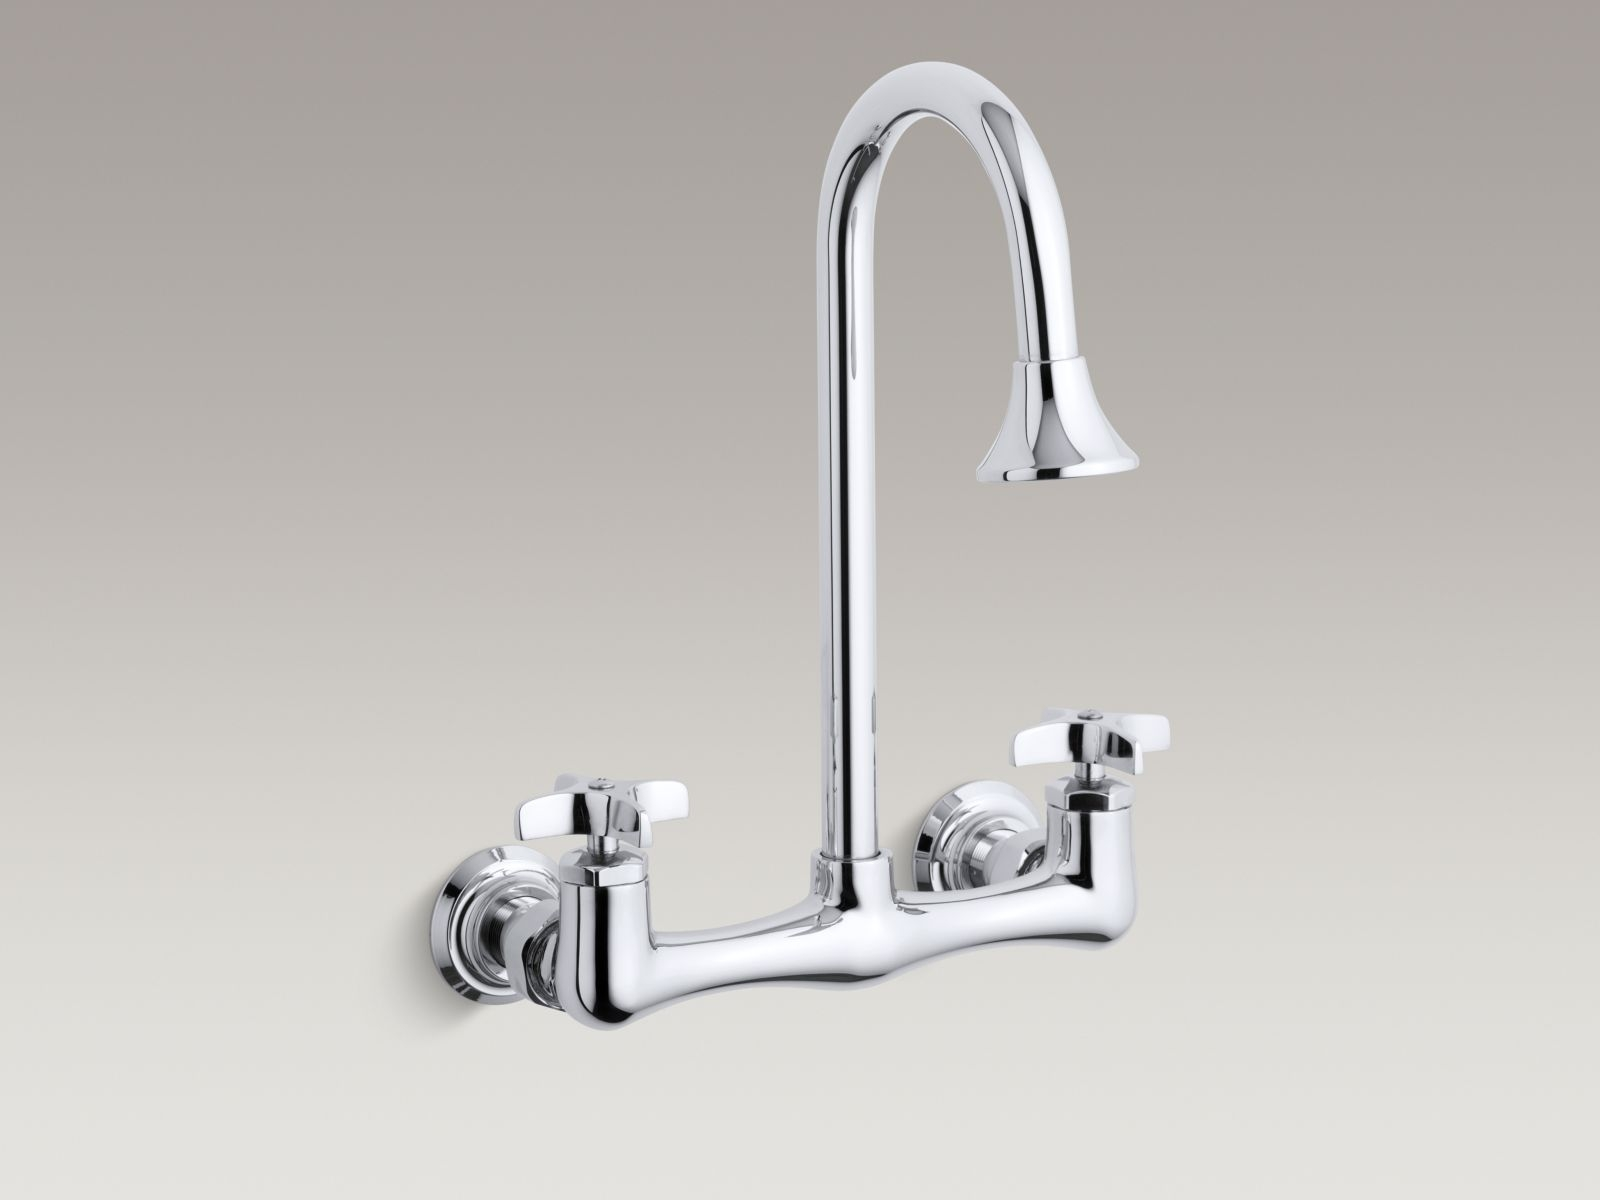 Ideas, wall mount utility faucet with spray wall mount utility faucet with spray standard plumbing supply category results for wall mount faucet 1600 x 1200  .